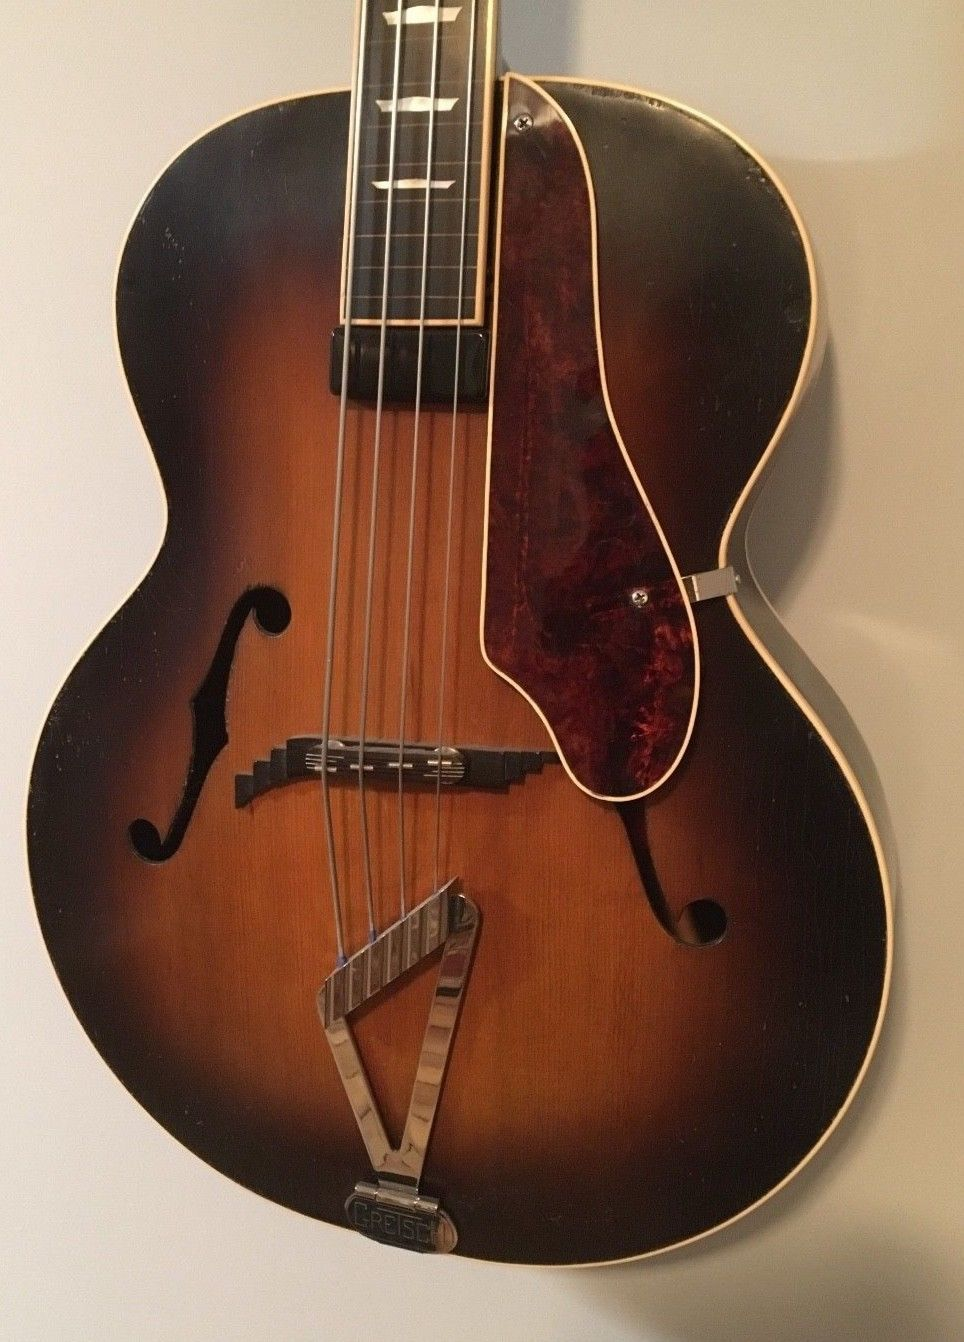 Gretsch Archtop Synchromatic Acoustic Bass Fretless 1950 S Musical Instruments Gear Guitars Basses Bass Guitars Ebay Bajo Acustico Bajos